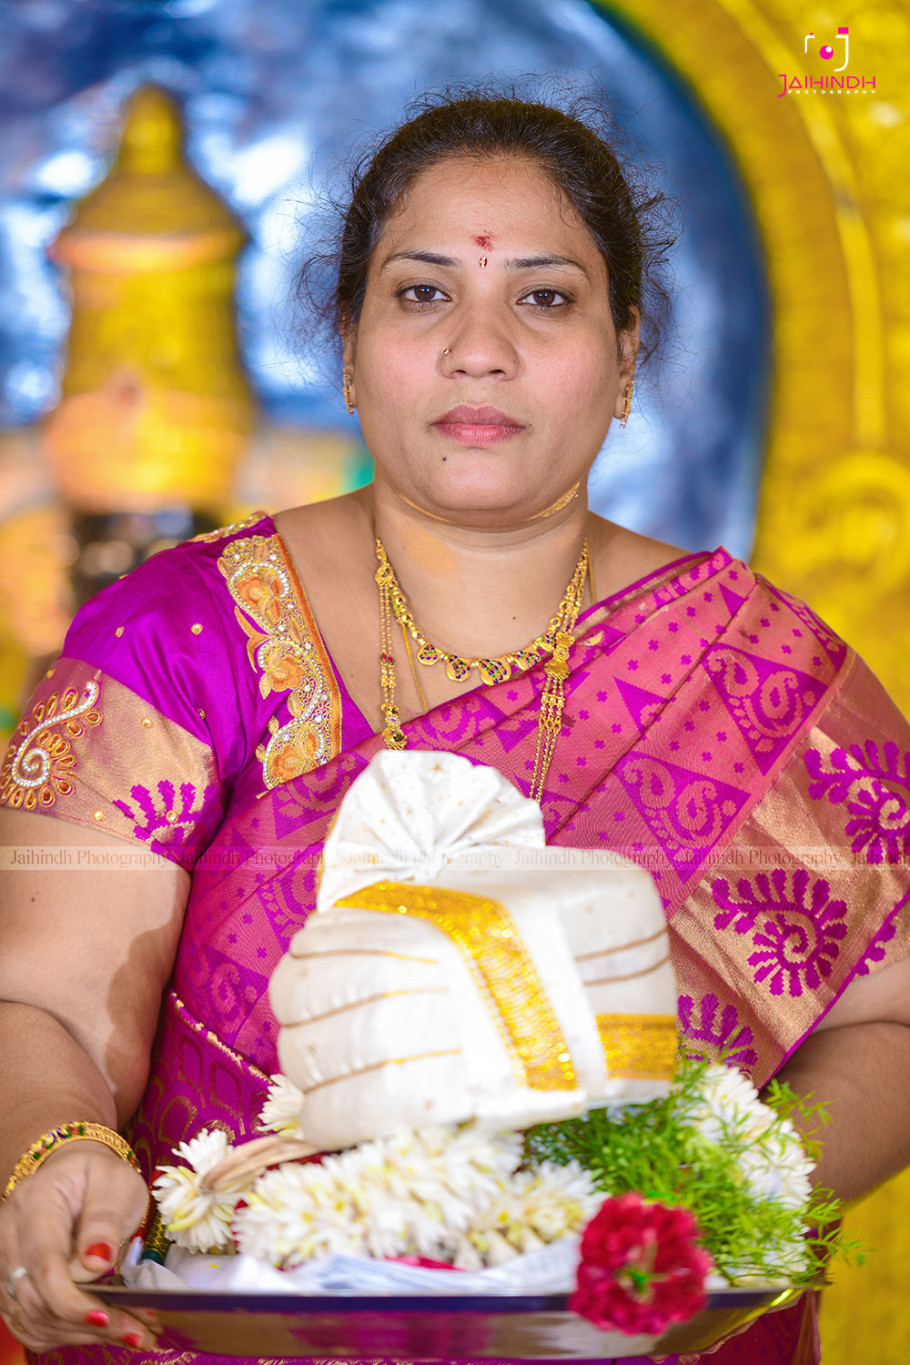 tamilnadu christian wedding, candid shots wedding, best photos, candid photos, candid photo, outdoor photography, best photography images, christian wedding photos, candid wedding photos, candid photography wedding, south indian wedding photography portfolios, best portrait photography, wedding candid photos, candid photography indian wedding album, south indian wedding photography, indian wedding album design, south indian marriage photography, wedding portrait, candid photography images, tamilnadu wedding photography, madurai famous, tamil wedding photos, tamilnadu wedding photos, tamil marriage photos, muslim marriage images, south indian wedding photography poses, south indian marriage, post wedding shoot, photography best, indian wedding photography, post wedding photoshoot, candid photography album, marriage candid photography, best photography photos, wedding close up photography, professional candid photography, candid photography chennai, south indian marriage photos album, best wedding photography, candid wedding, candid images, best photography of people, photography images, tamilnadu marriage, what is candid, famous photographers 2017, south indian wedding photography facebook, birthday photography, candid photography poses, candid picture, marriage portrait, wedding photography images, tamilnadu wedding, wedding album design, hindu marriage photography, madurai photography, tamil wedding photography poses, photographer images, marriage portrait photography, wedding videography, candid fashion photography, wedding photography poses, tamilnadu photography, creative candid photography, hindu wedding photography, hindu wedding photography,